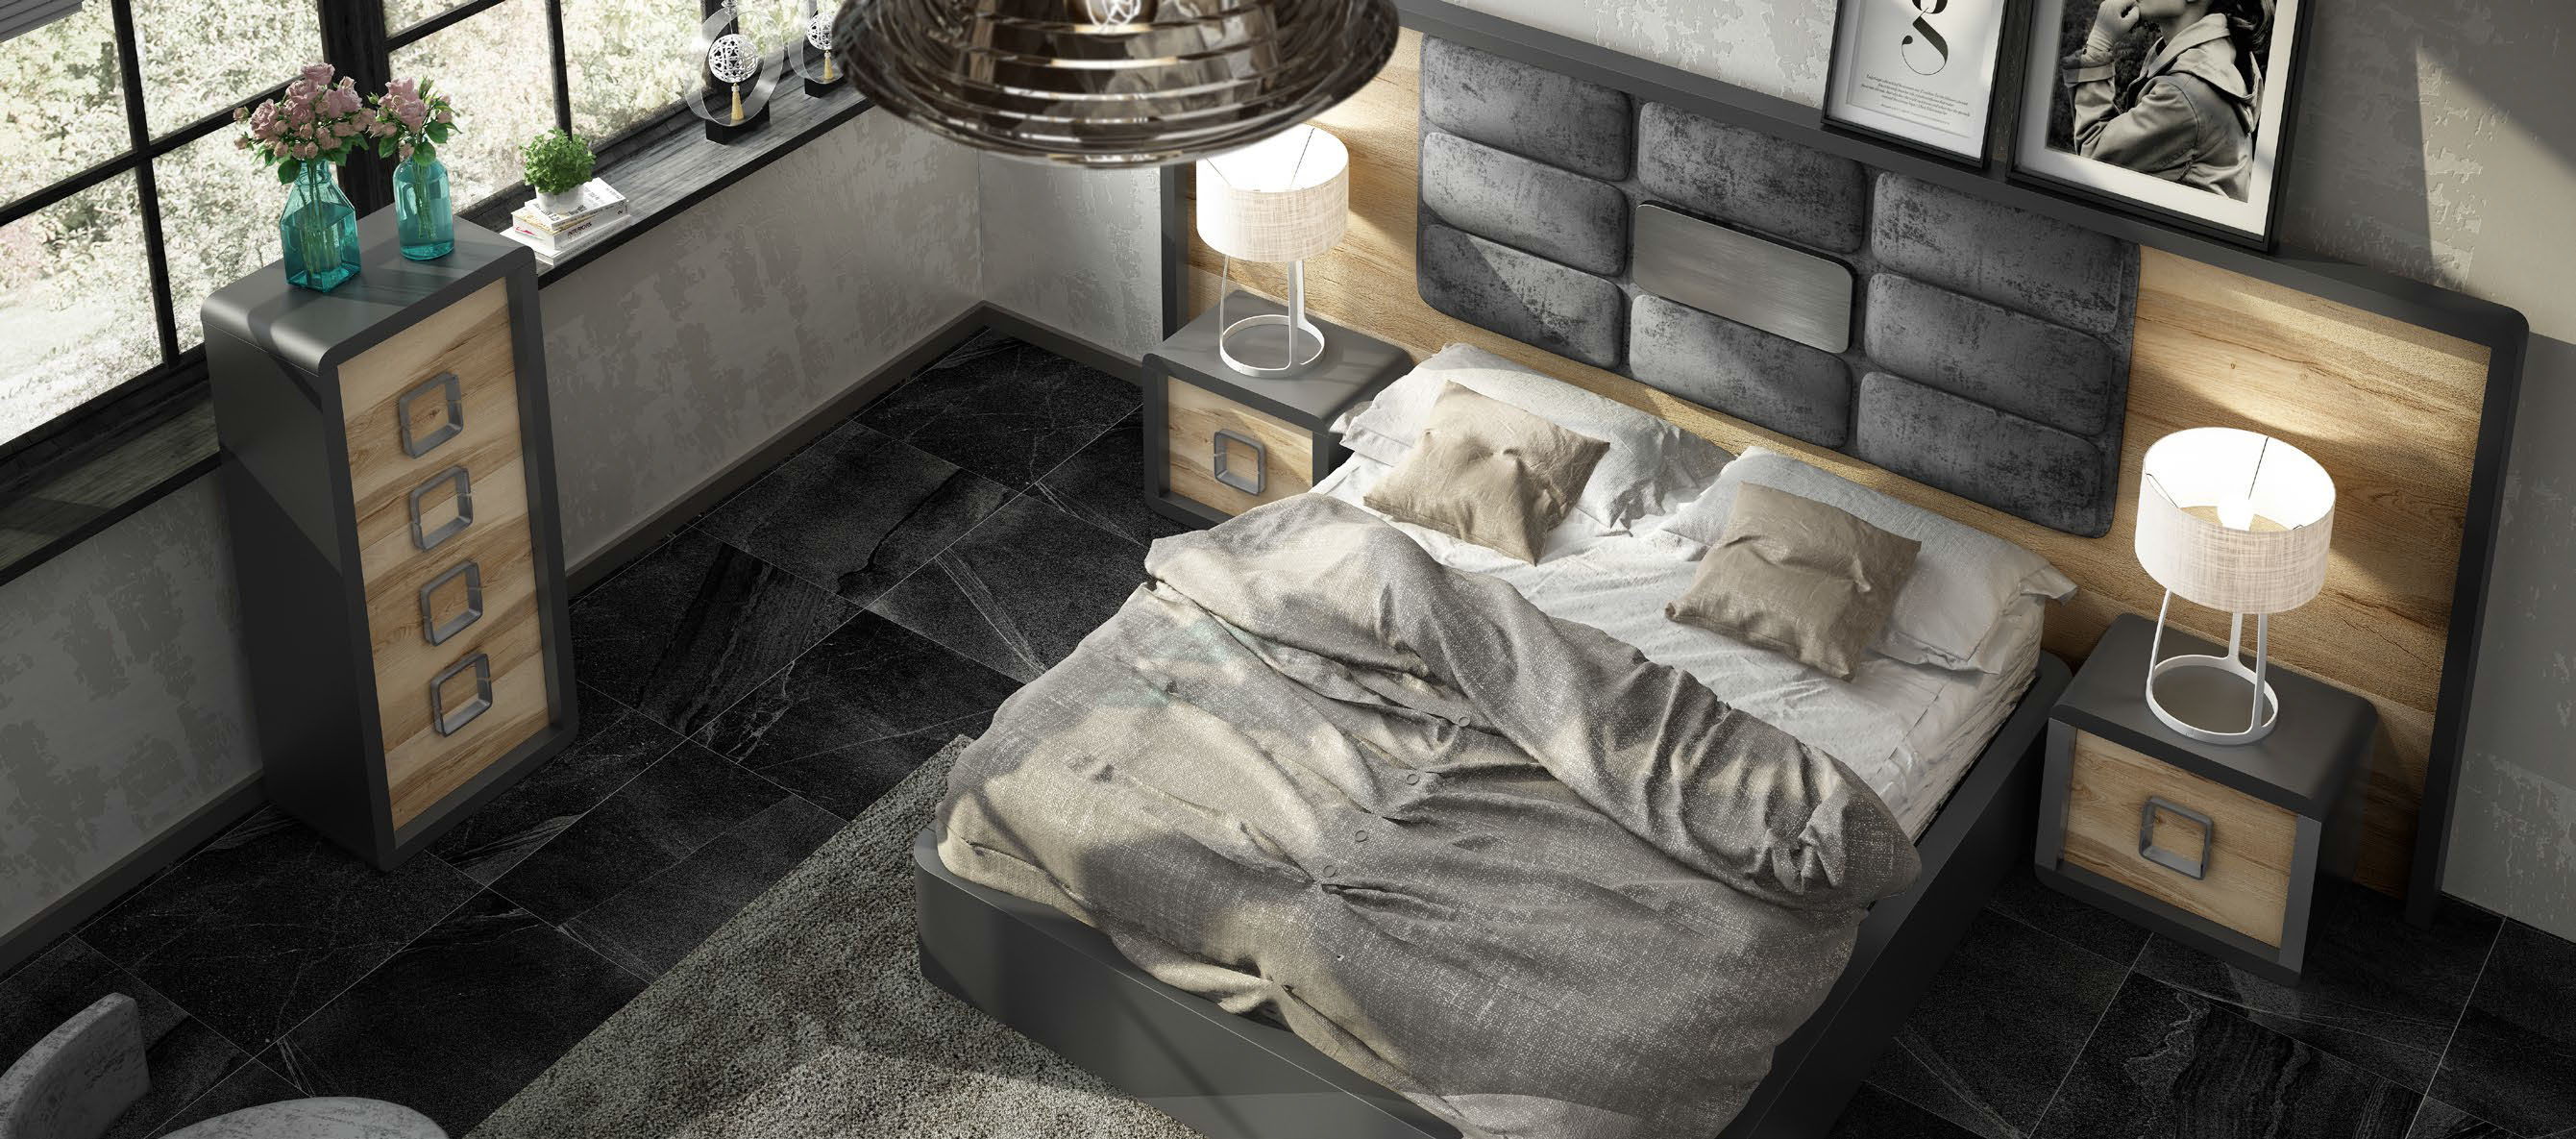 Brands Franco Furniture Bedrooms vol3, Spain DOR 173